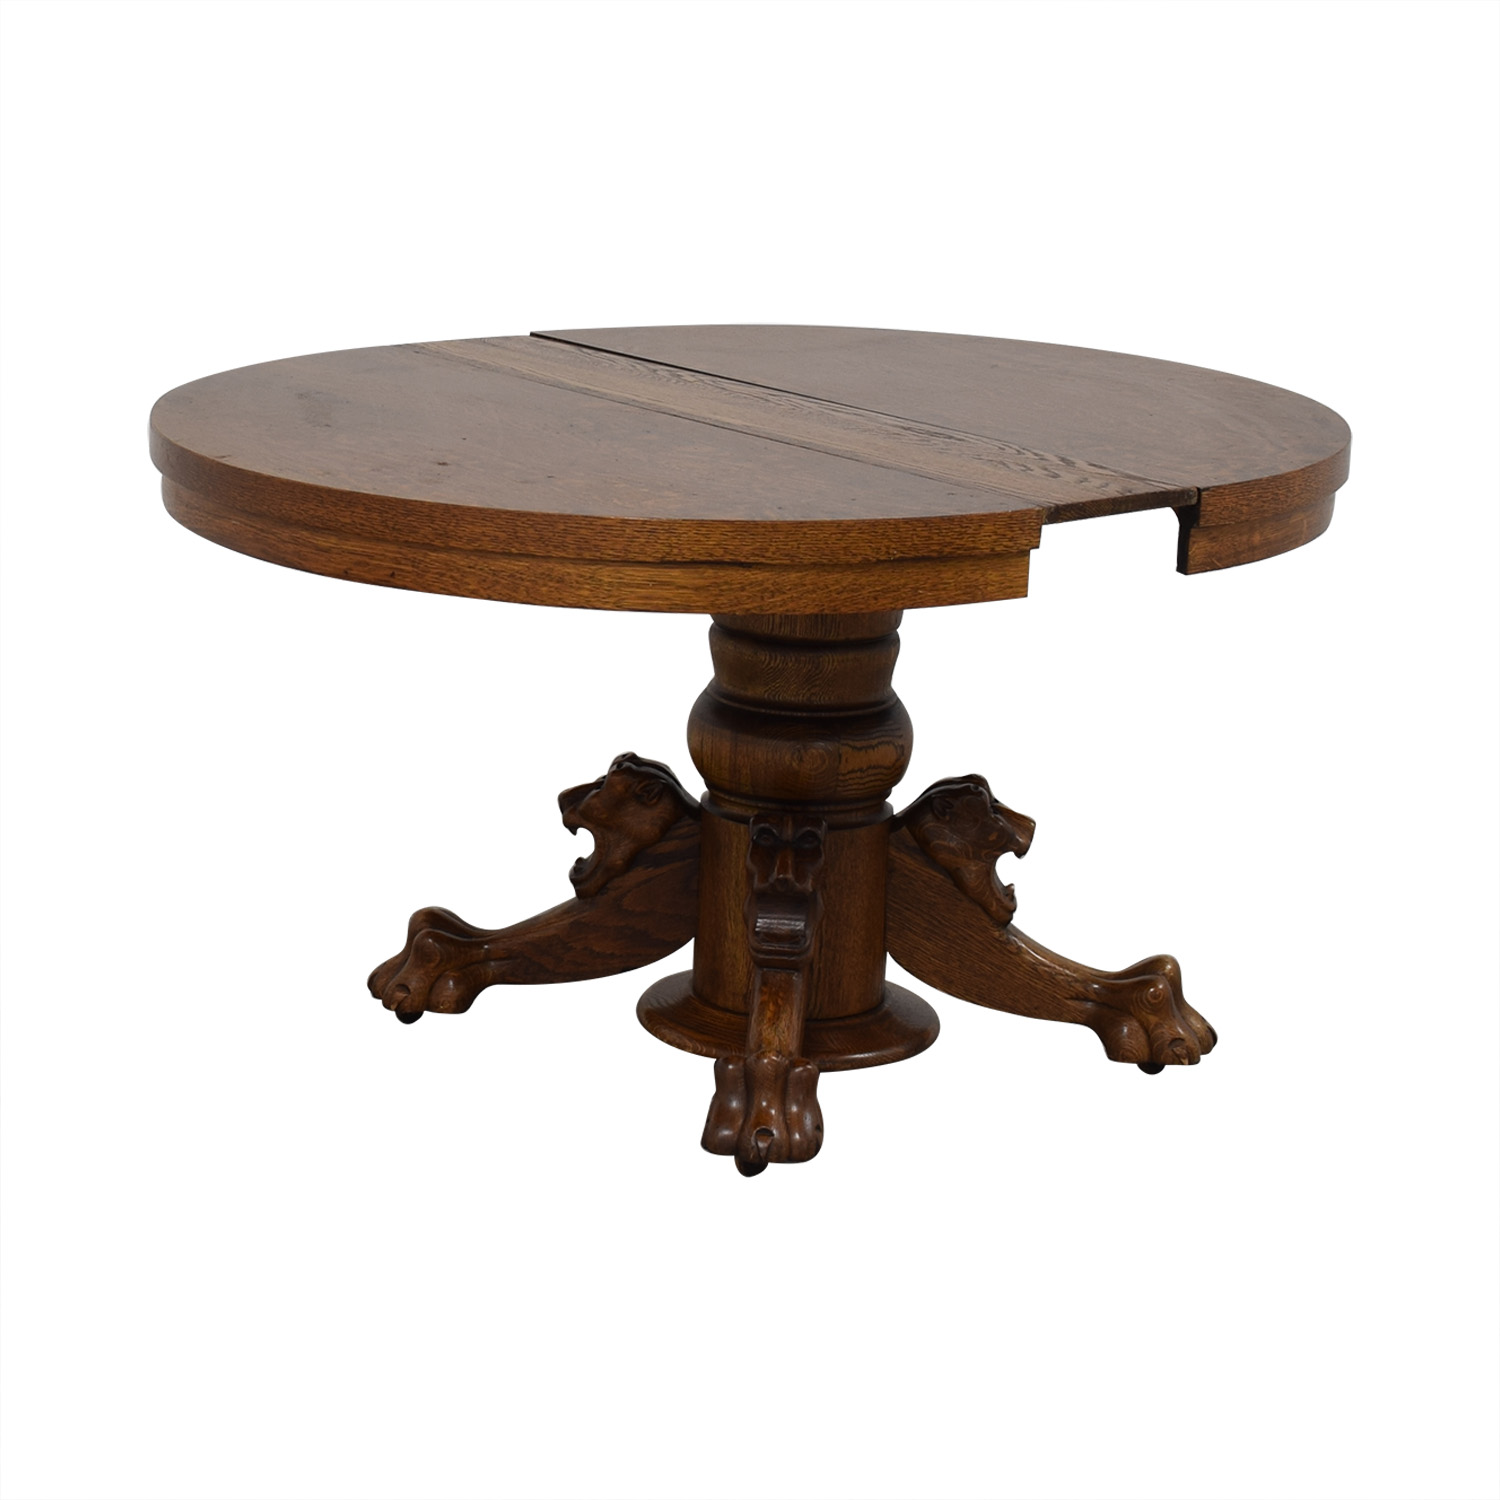 Vintage Extendable Dining Table second hand